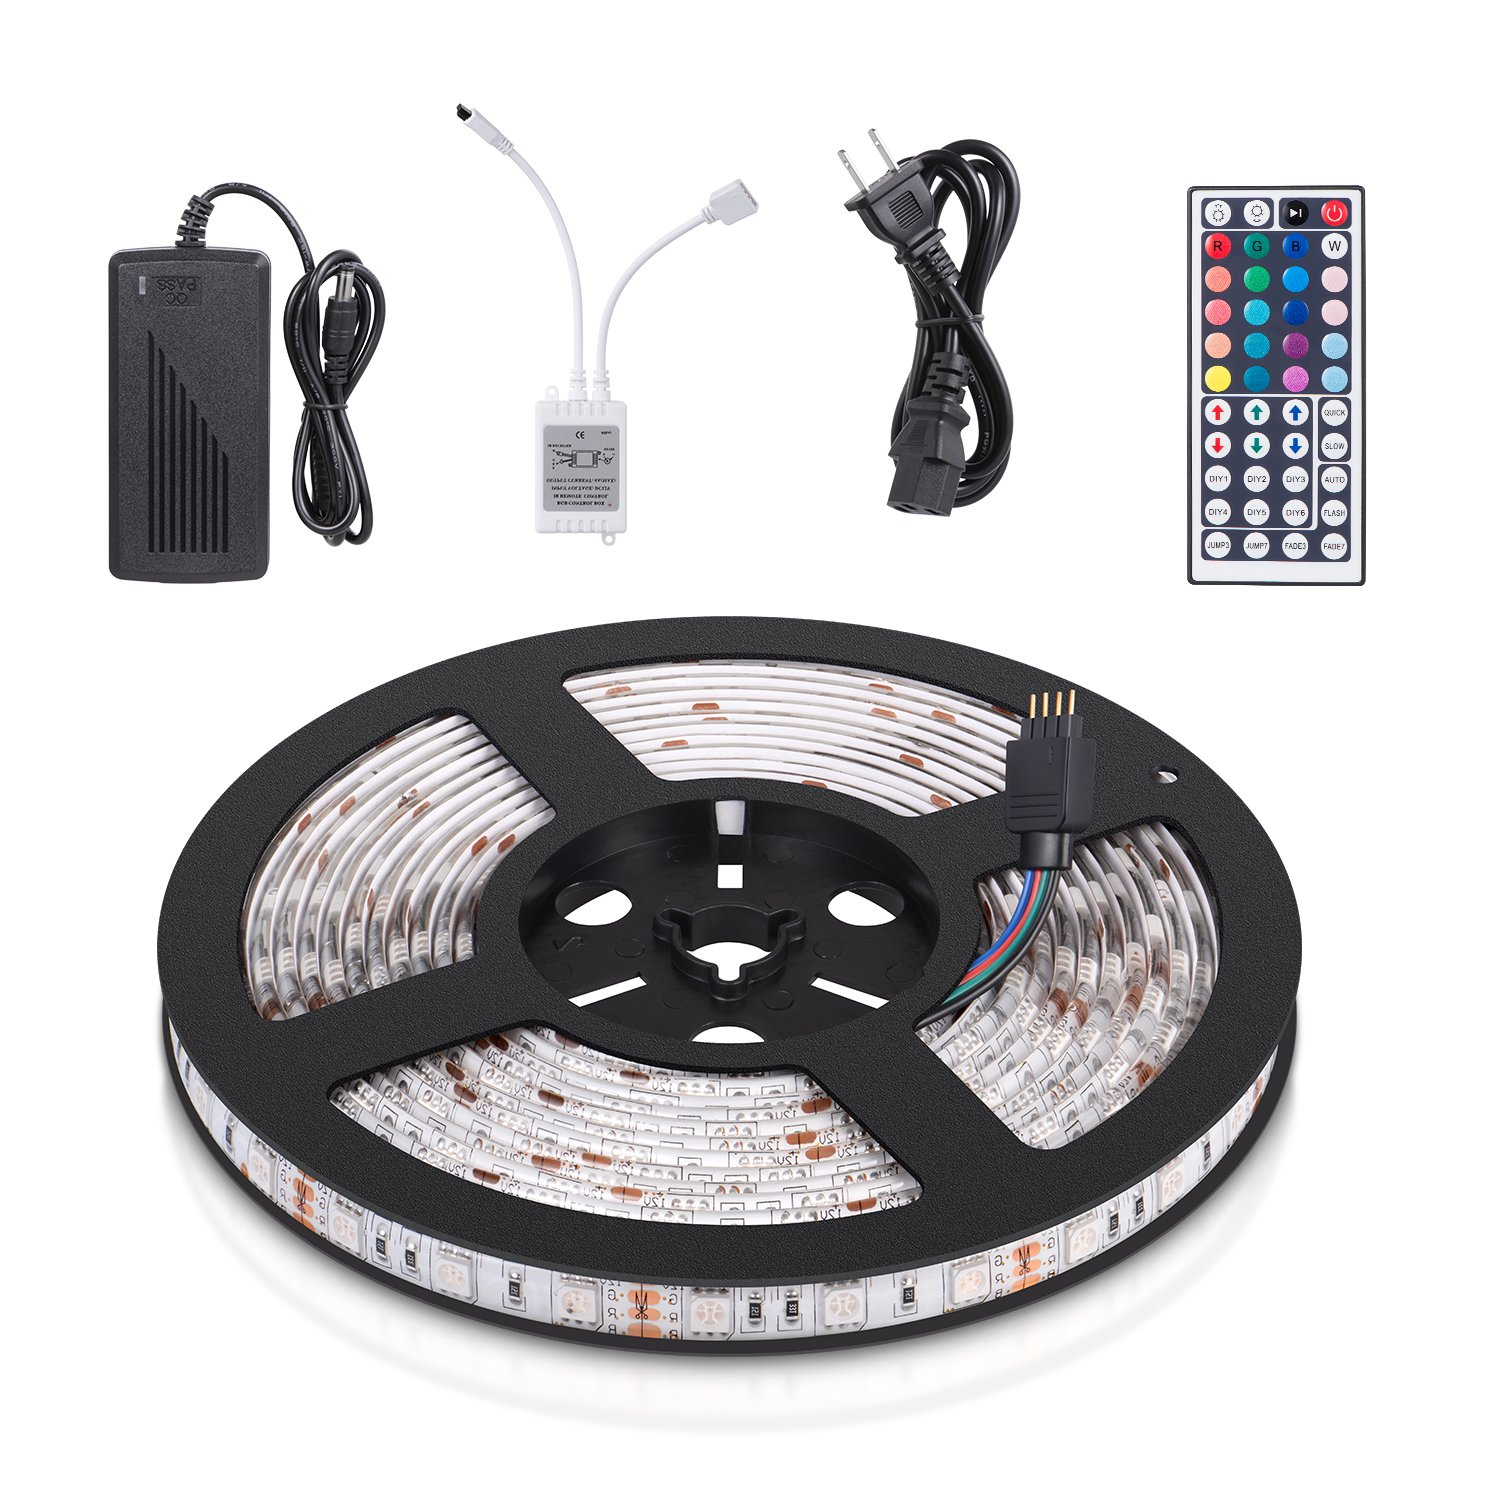 Homaz Multicolored LED Strip Kit Flexible LED Strip Waterproof Full Color Changing Strip Light 16.4ft 5Meter / Reel 300X RGB SMD5050 Lamps with 44 Key IR Remote and 12V 5A 60W Power Supply